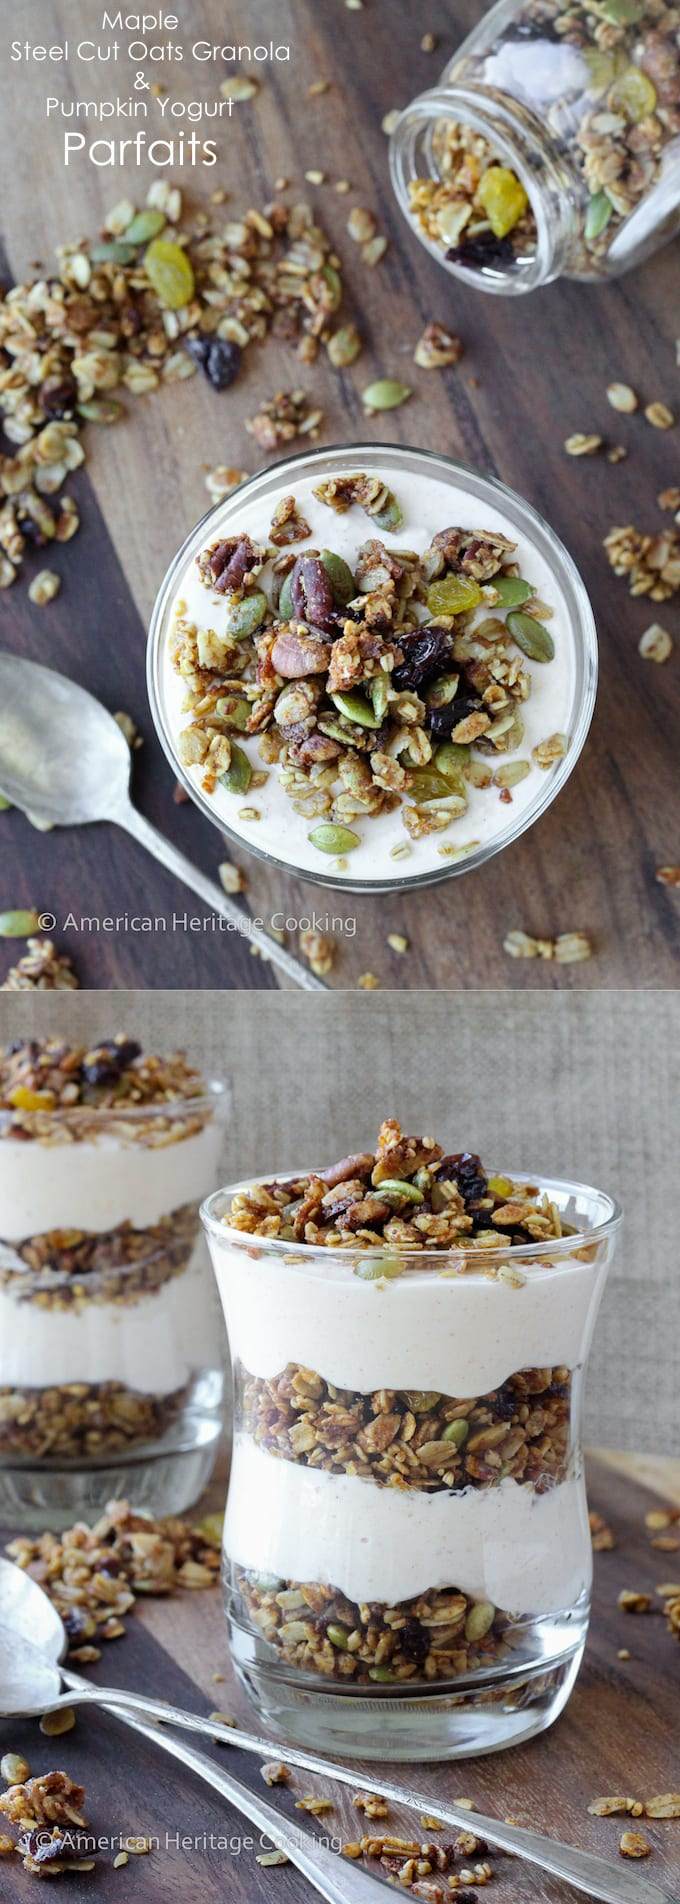 These Maple Steel Cut Oats Granola Pumpkin Yogurt Parfaits are an easy, delicious breakfast! Protein and fiber packed to keep you full!